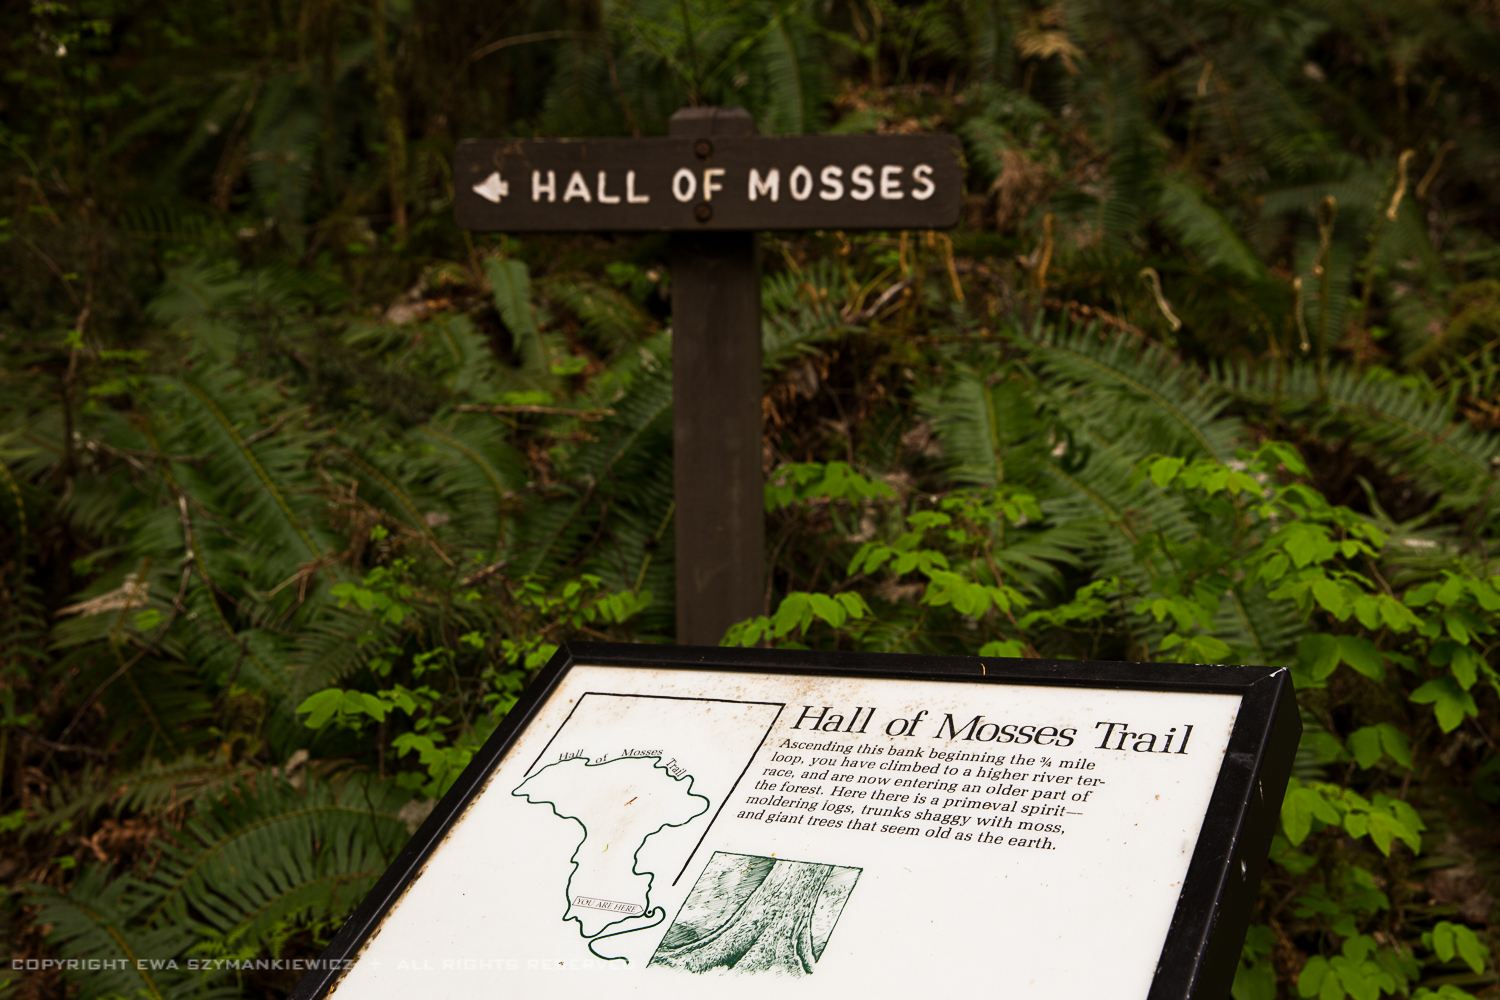 Hal of Mosses, Hoh Rain Forest, Olympic National Park